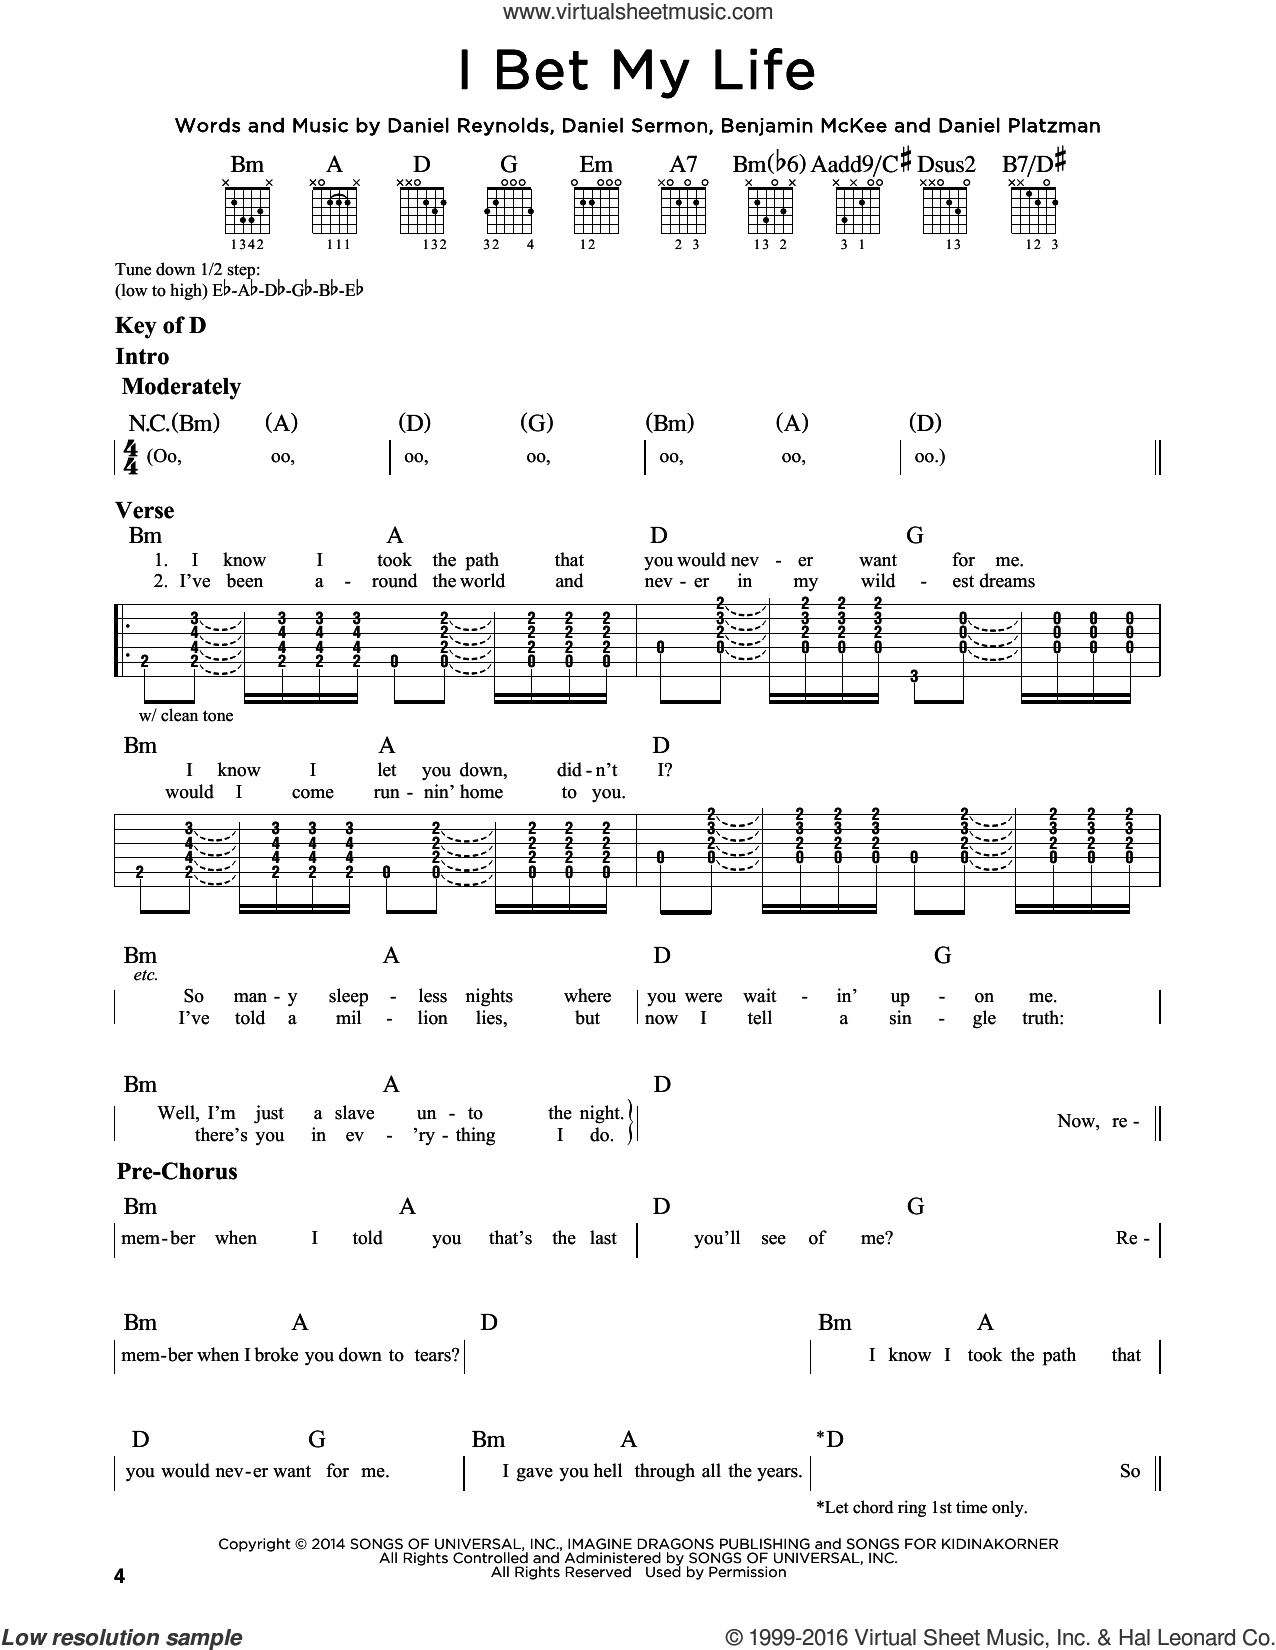 I Bet My Life sheet music for guitar solo (lead sheet) by Daniel Sermon, Imagine Dragons and Daniel Reynolds. Score Image Preview.